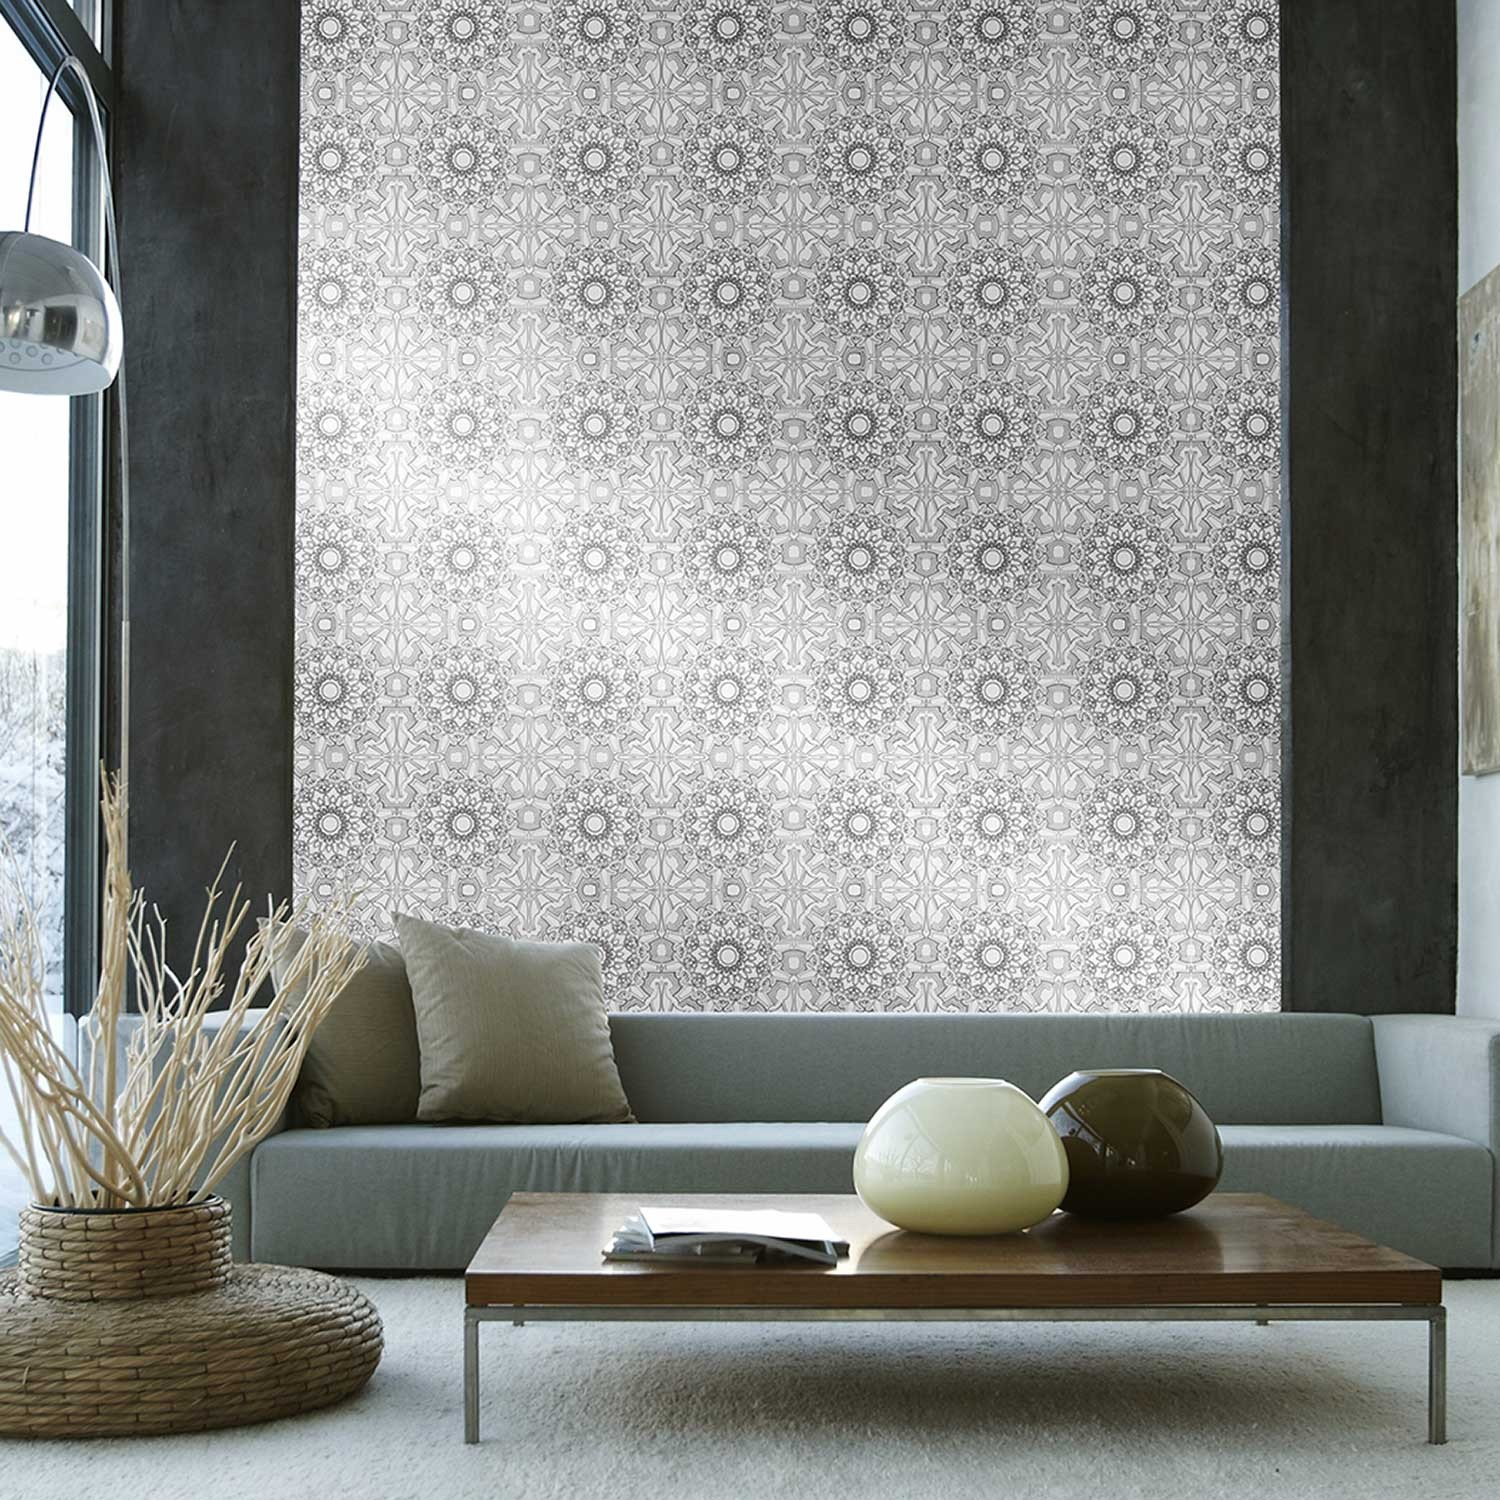 Temporary Wallpaper   Medallion   Metallic SilverBlack 1500x1500